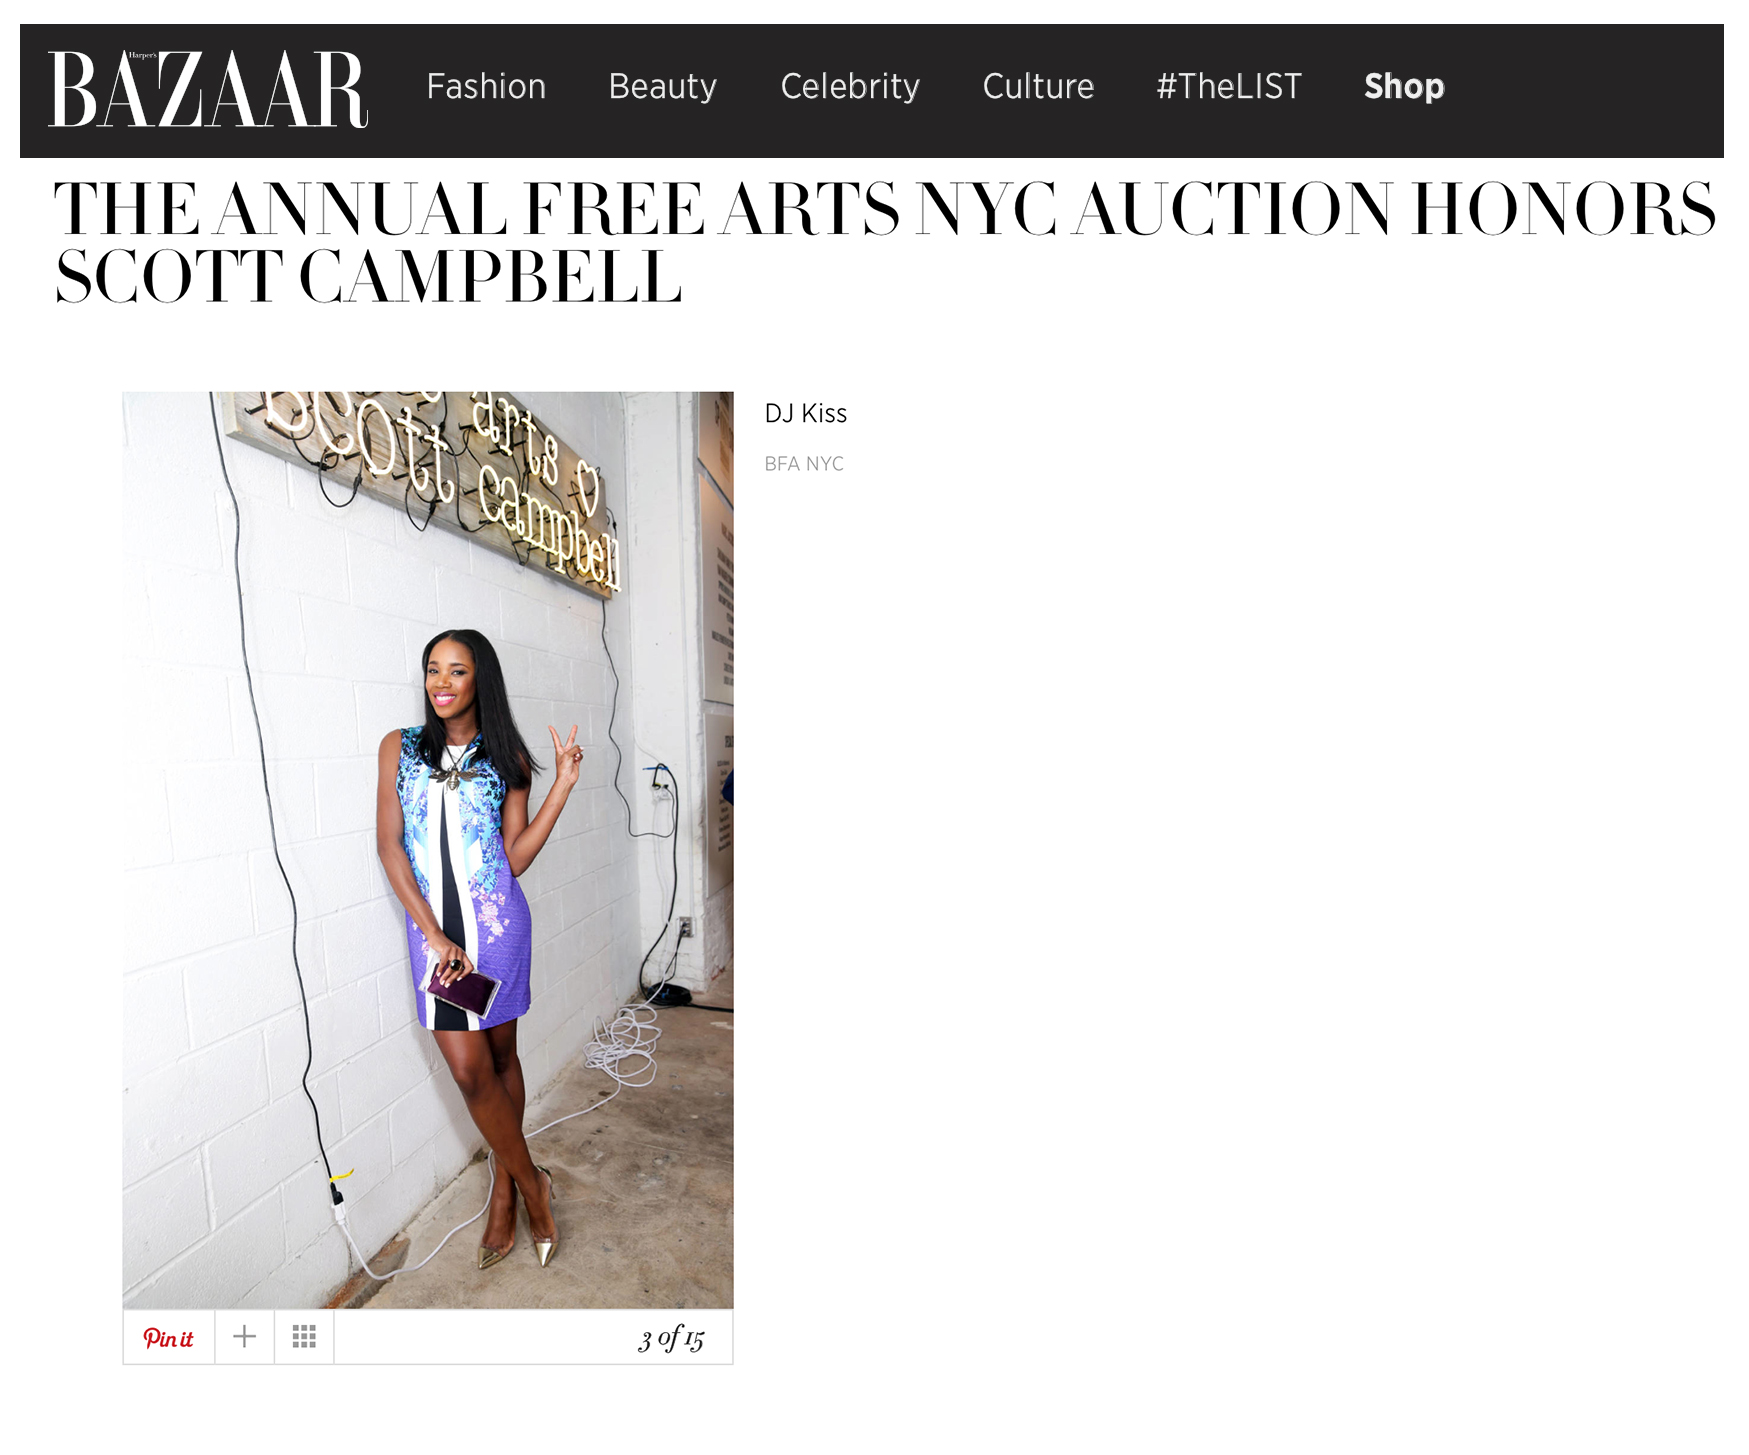 Harper's Bazaar - Free Arts Auction